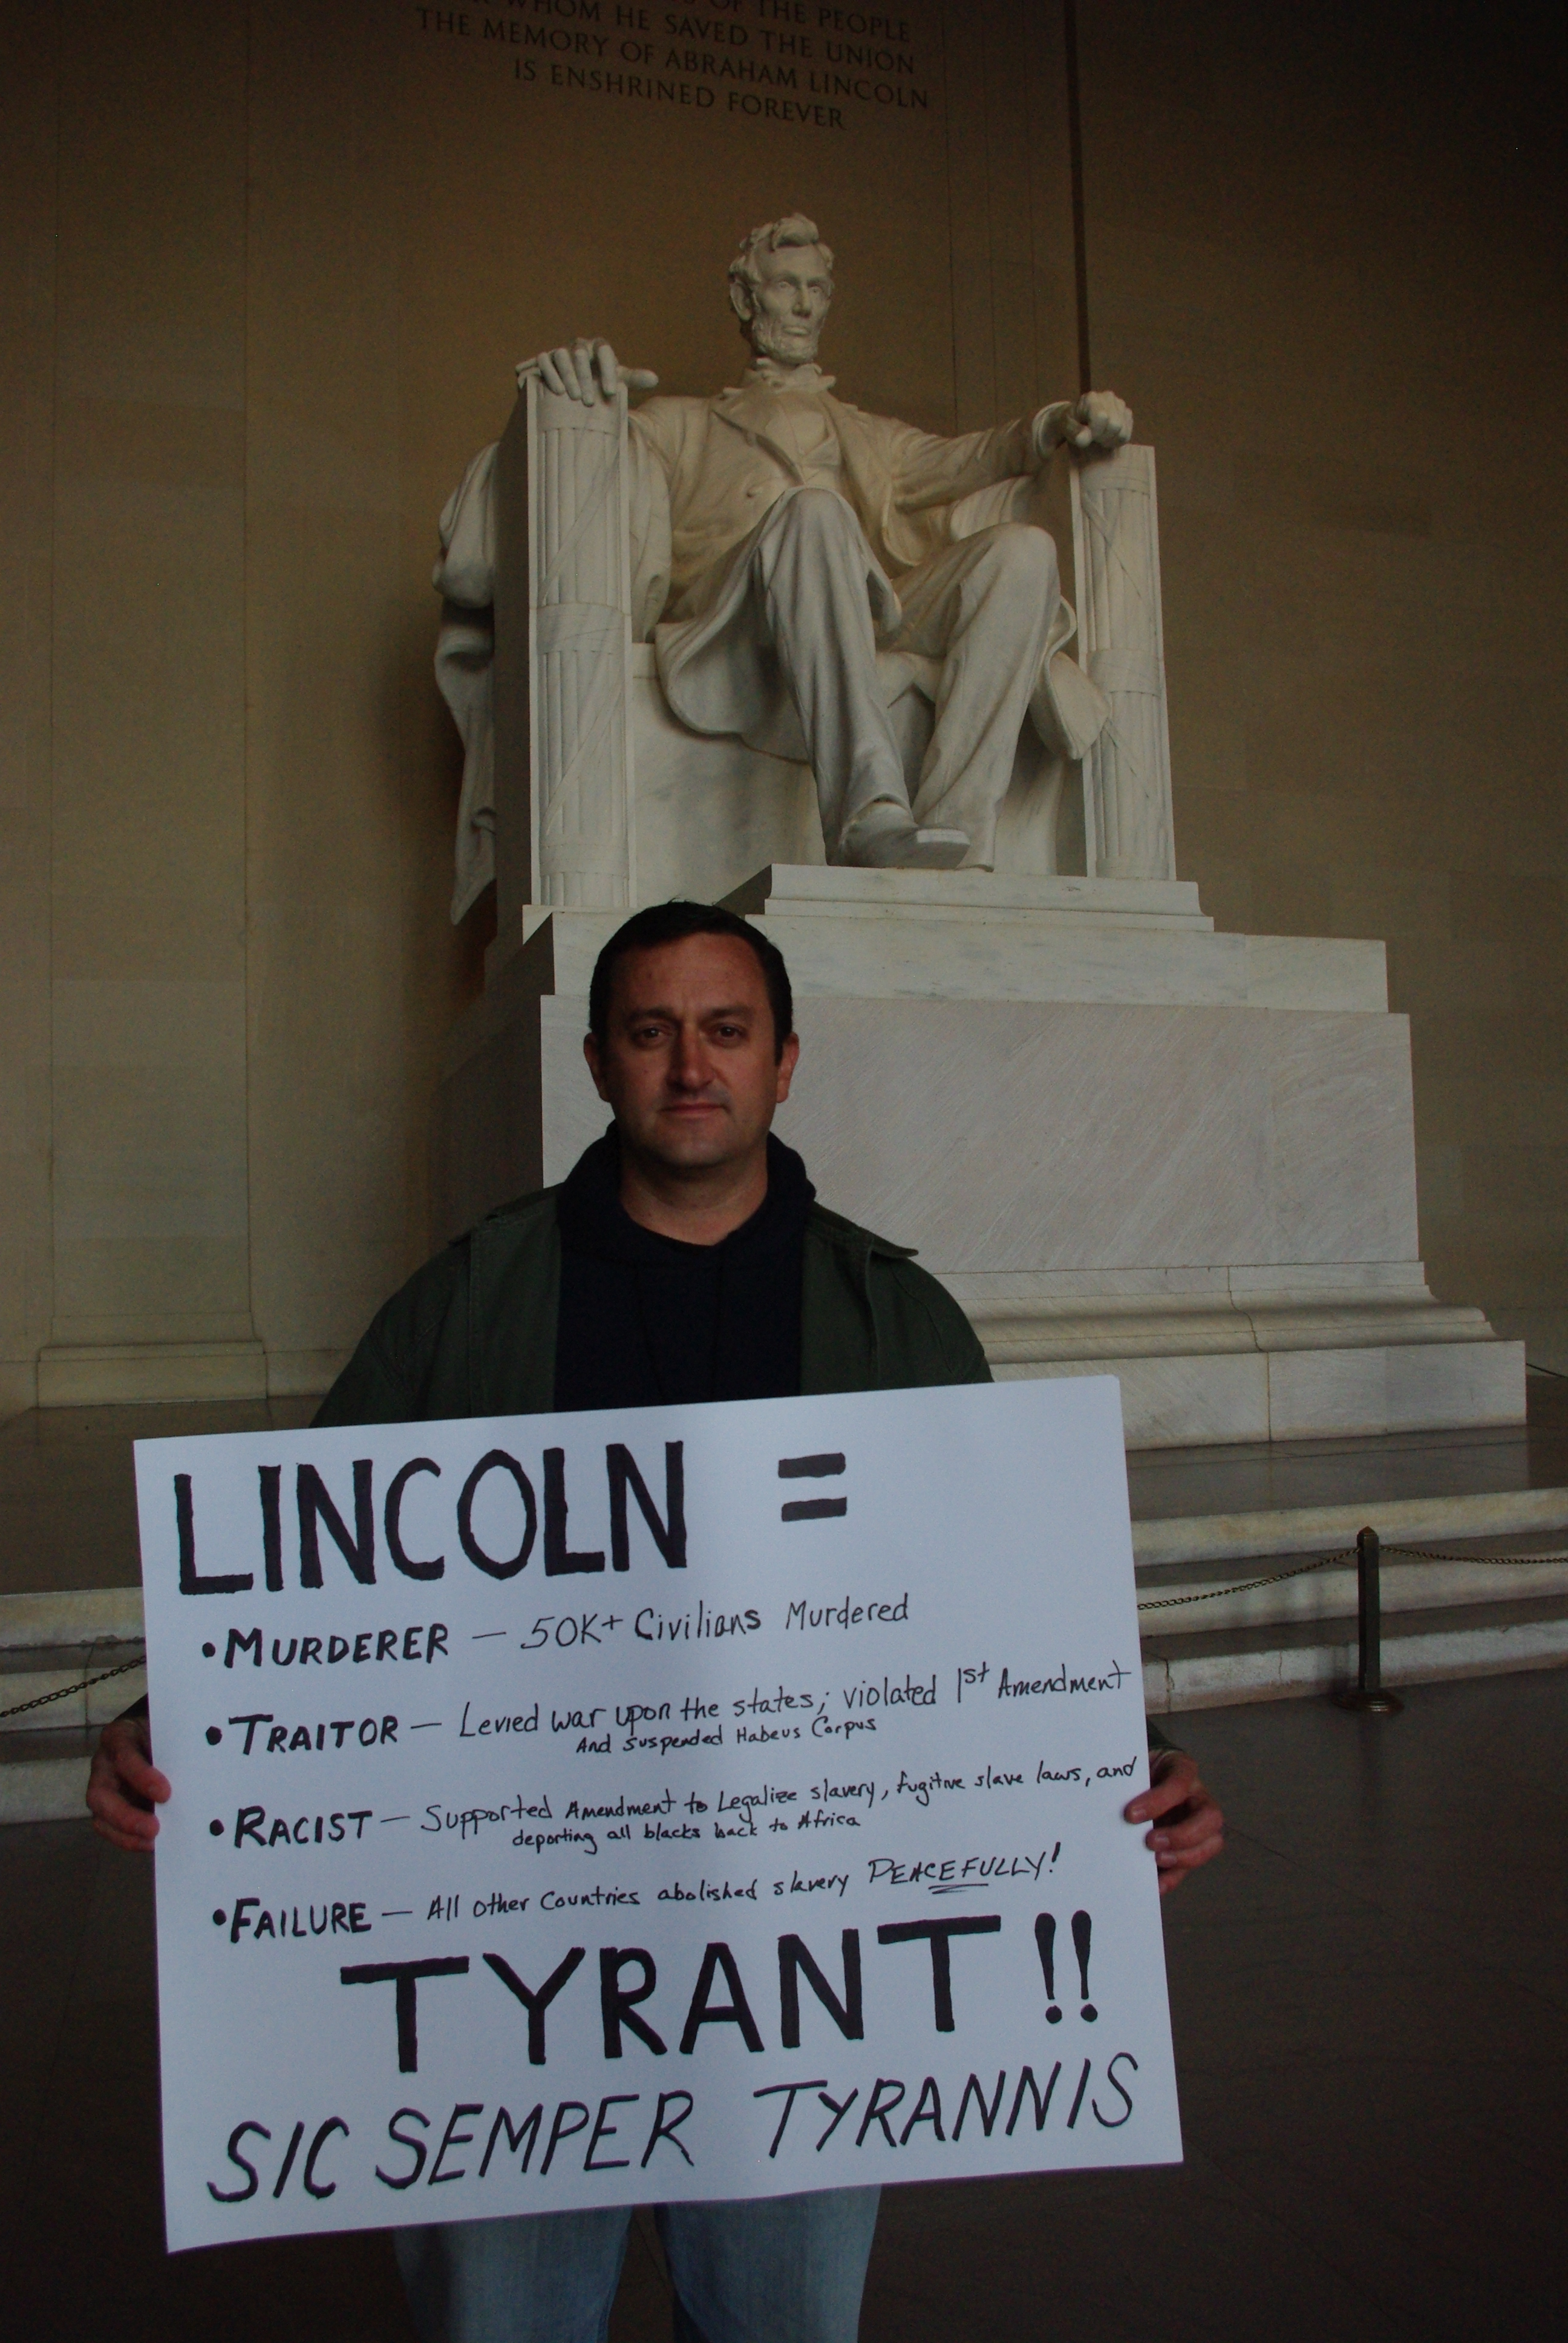 Saying Quot Lincoln Was A Tyrant Quot Got Me Kicked Out Fun Political Survey